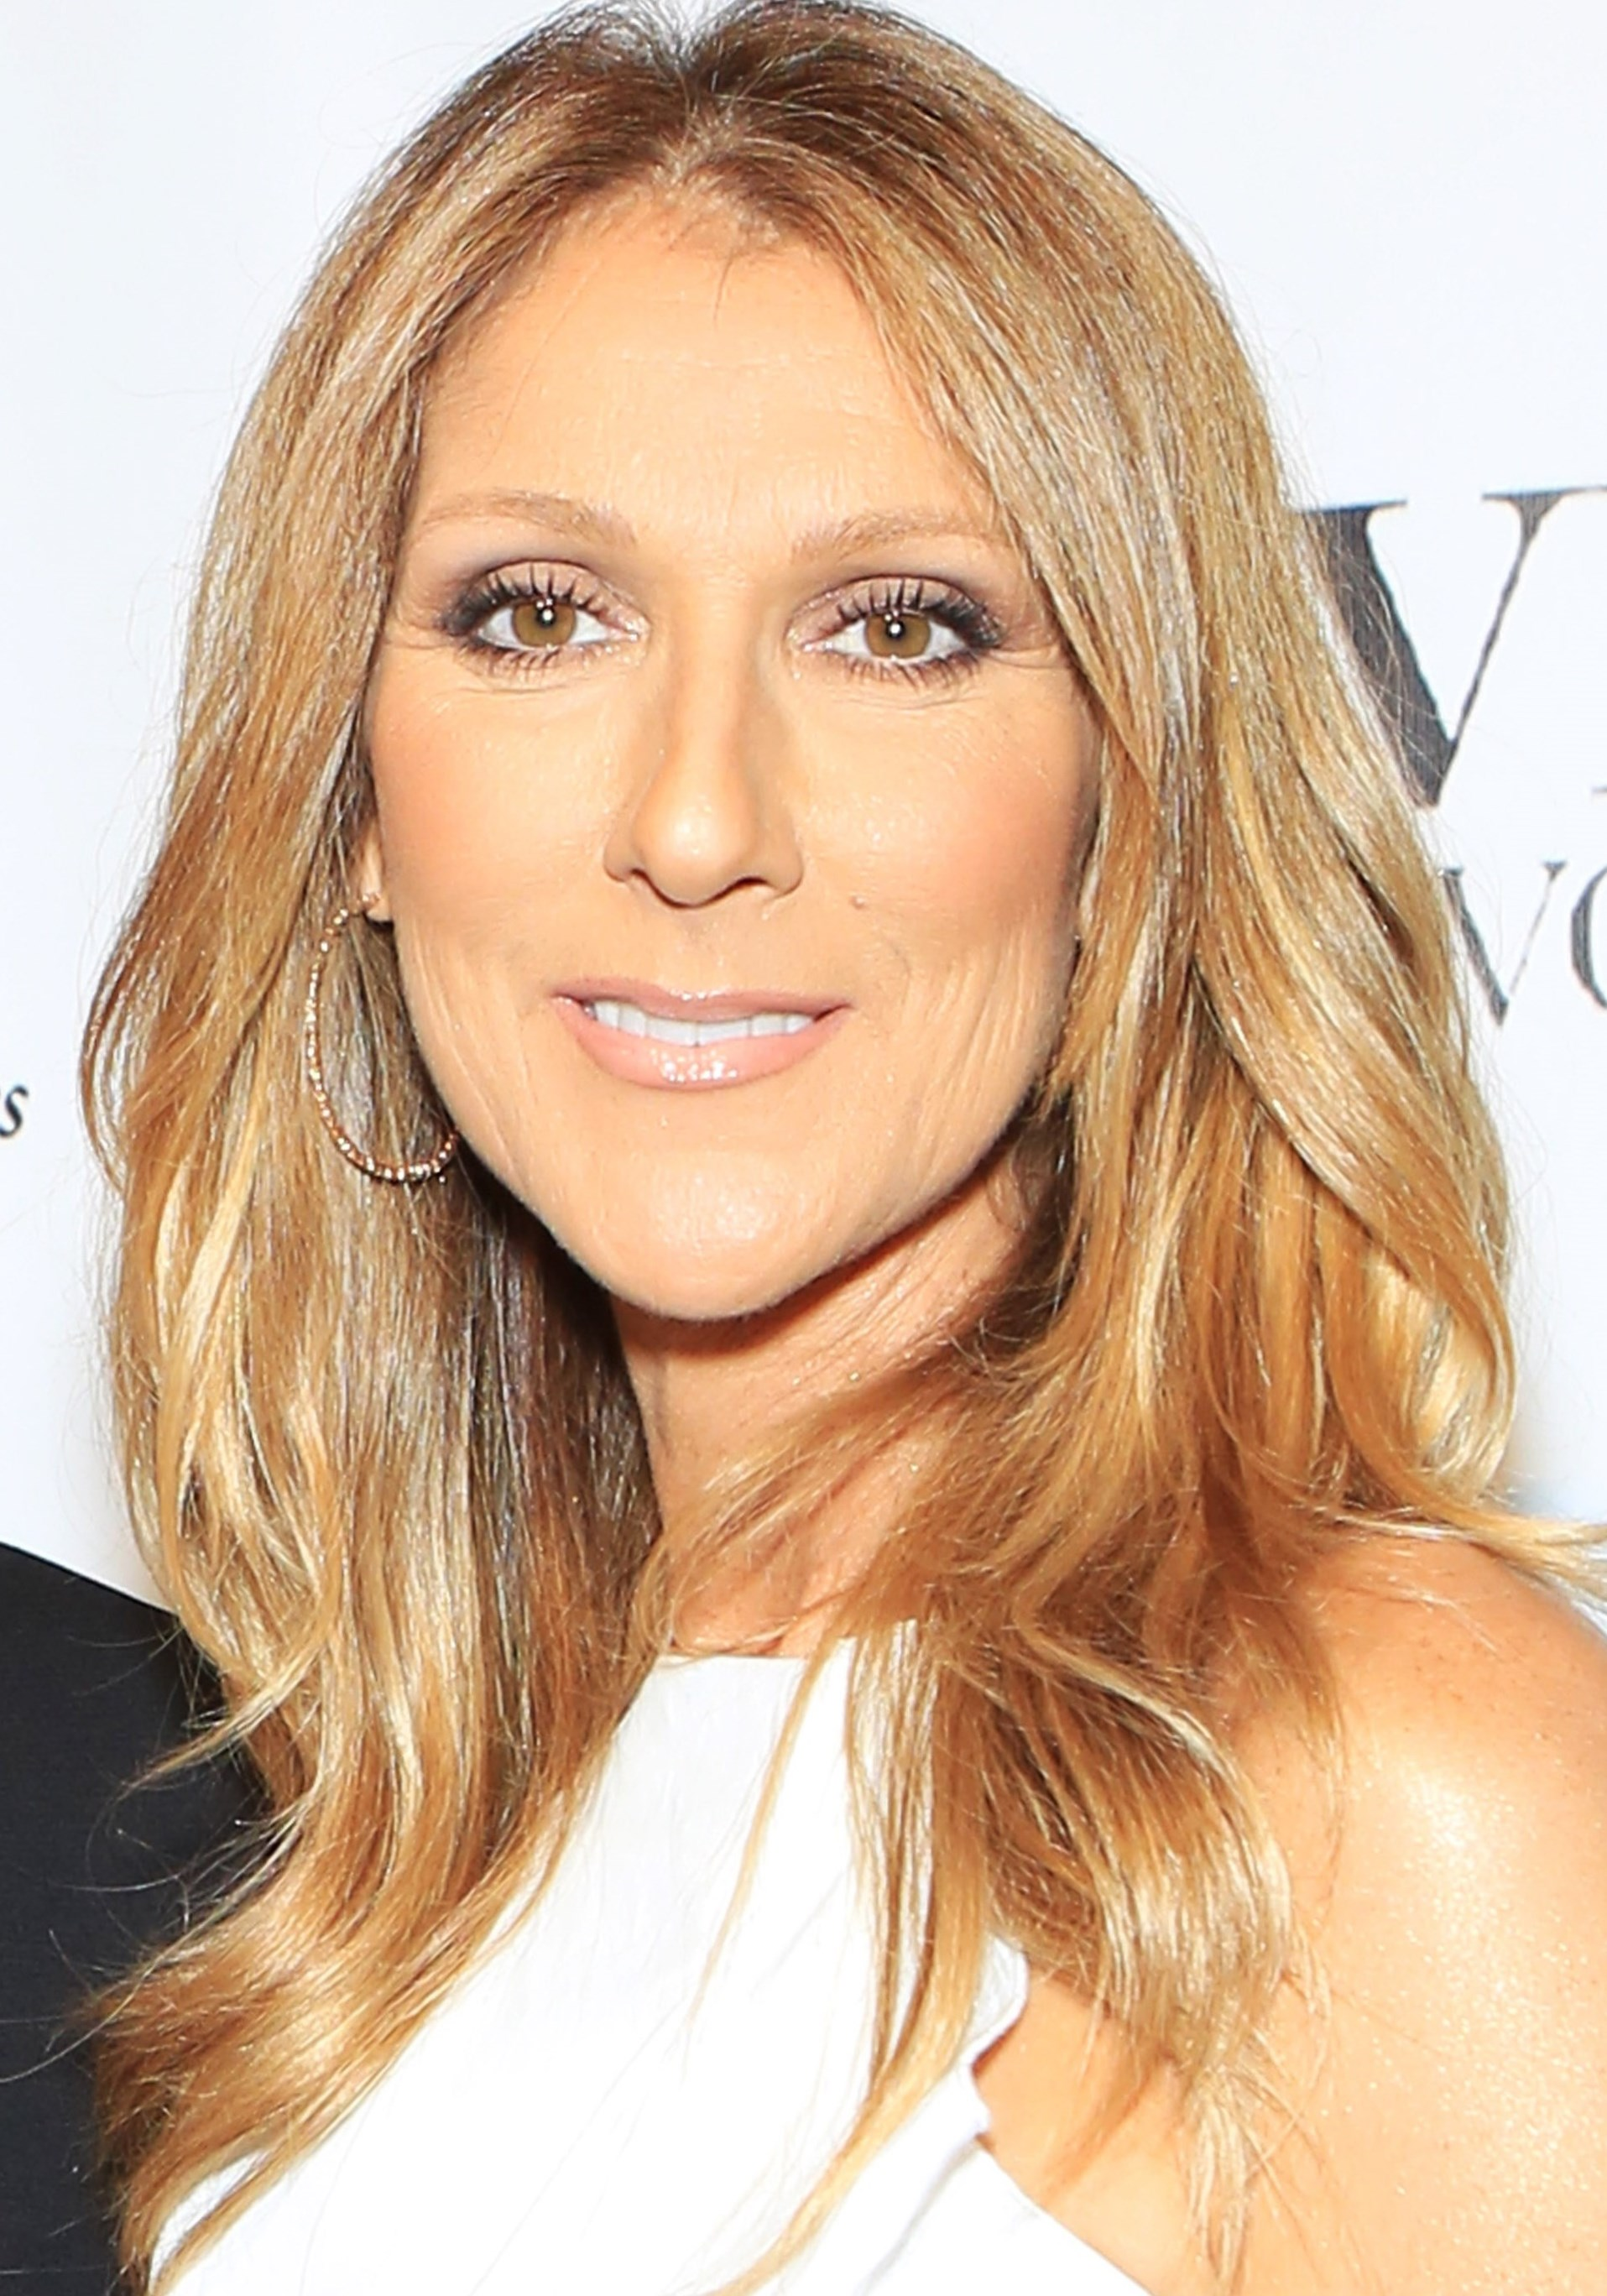 Celine Dion weight, height and age. We know it all!